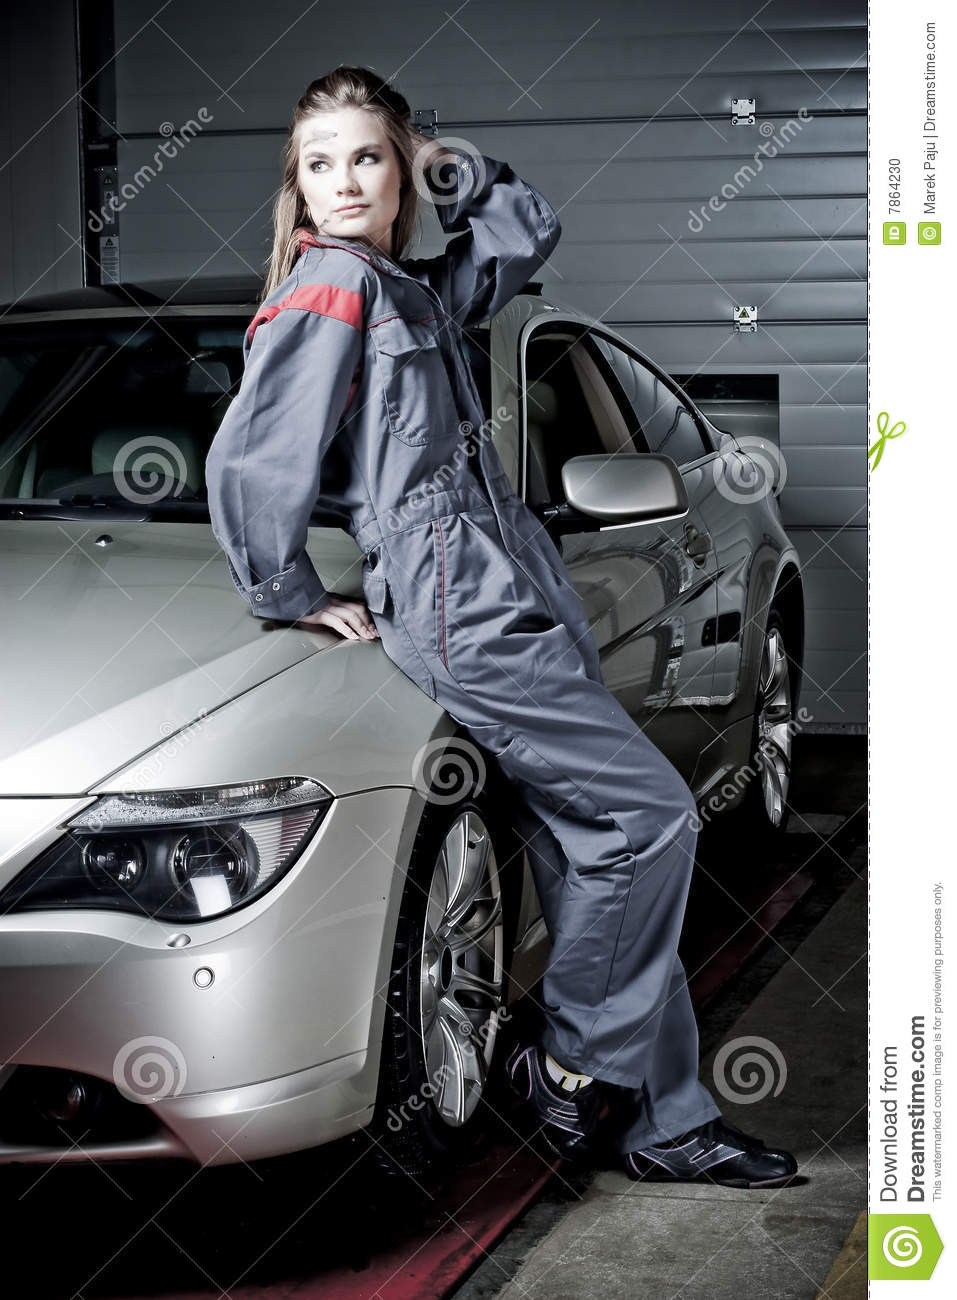 garage lean to ideas - Girl in mechanic uniform stock photo Image of pose work